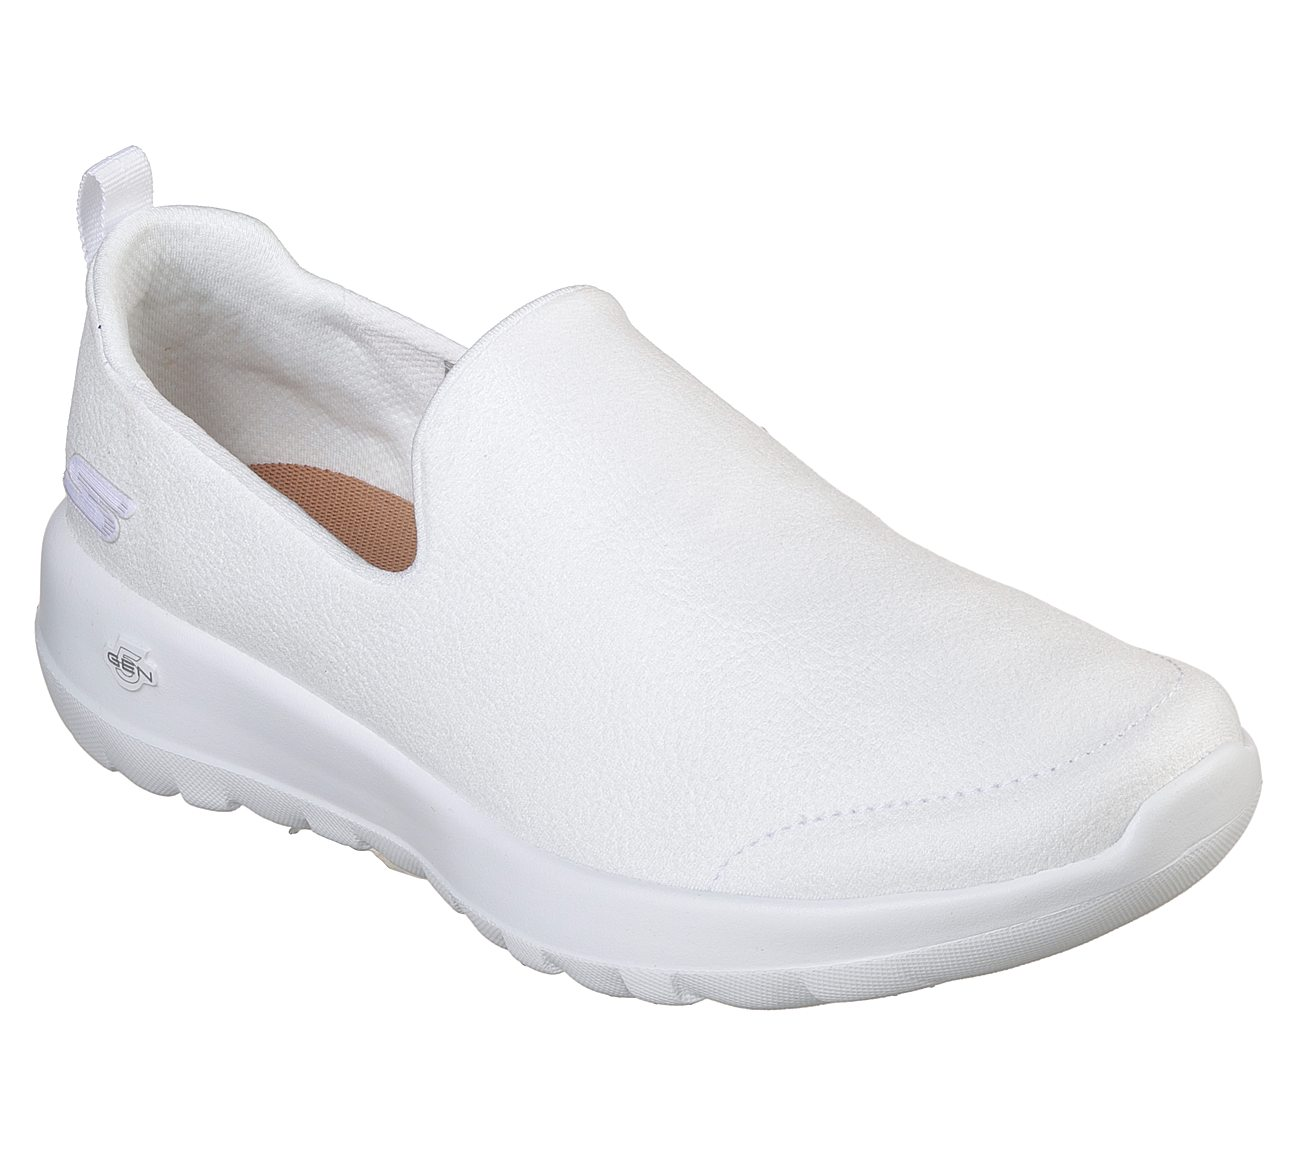 Skechers Women's Skechers GOwalk Joy Slip On Walking Sneaker